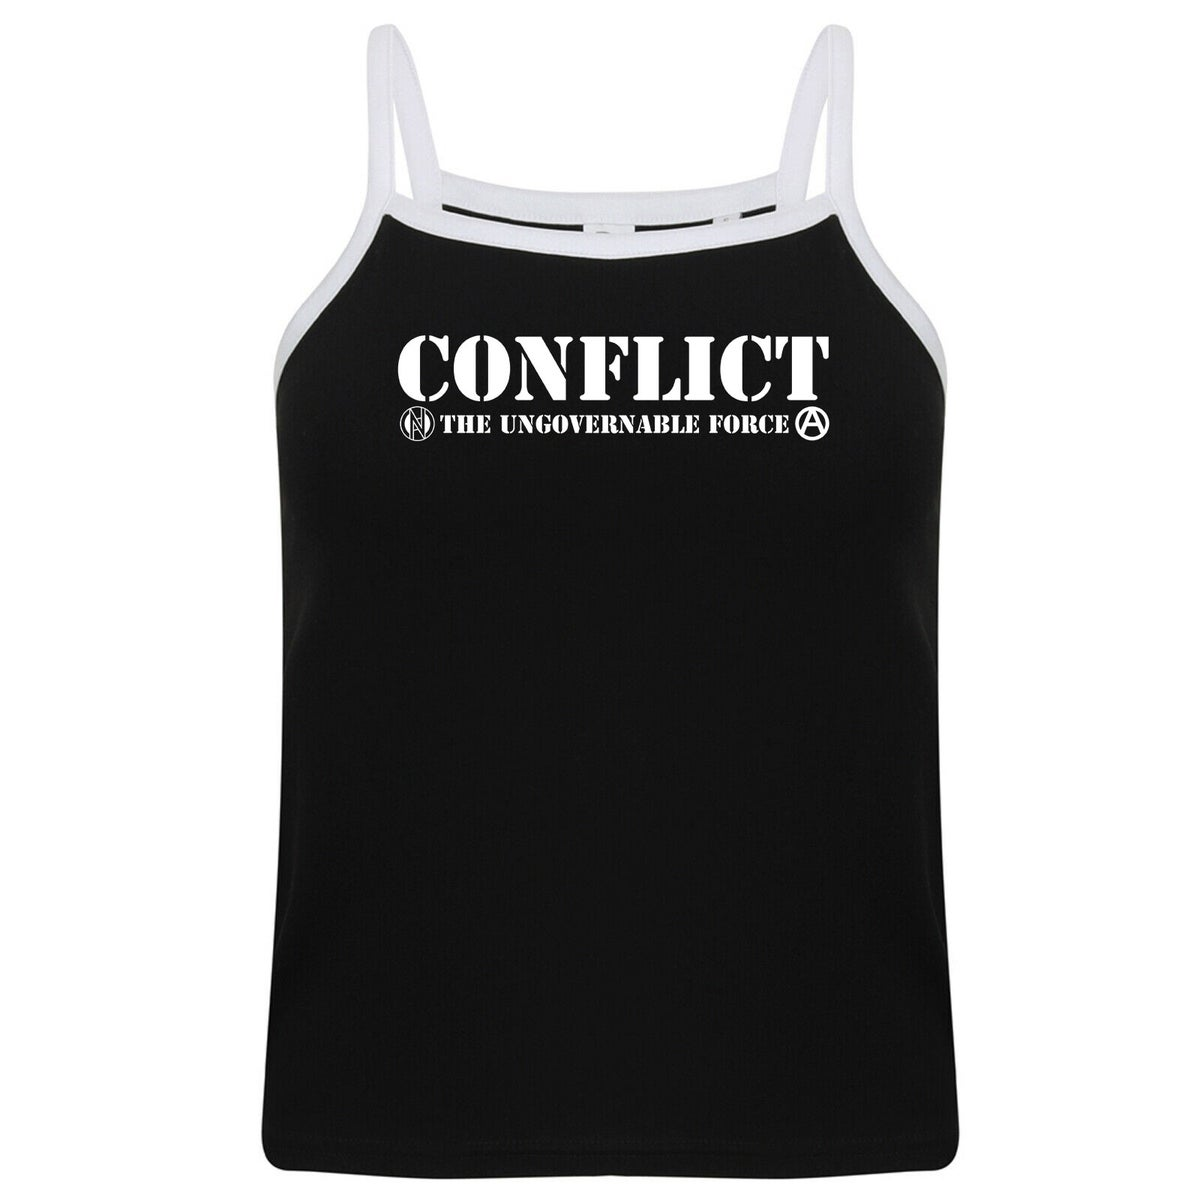 Image of CONFLICT Ungovernable Force strap top